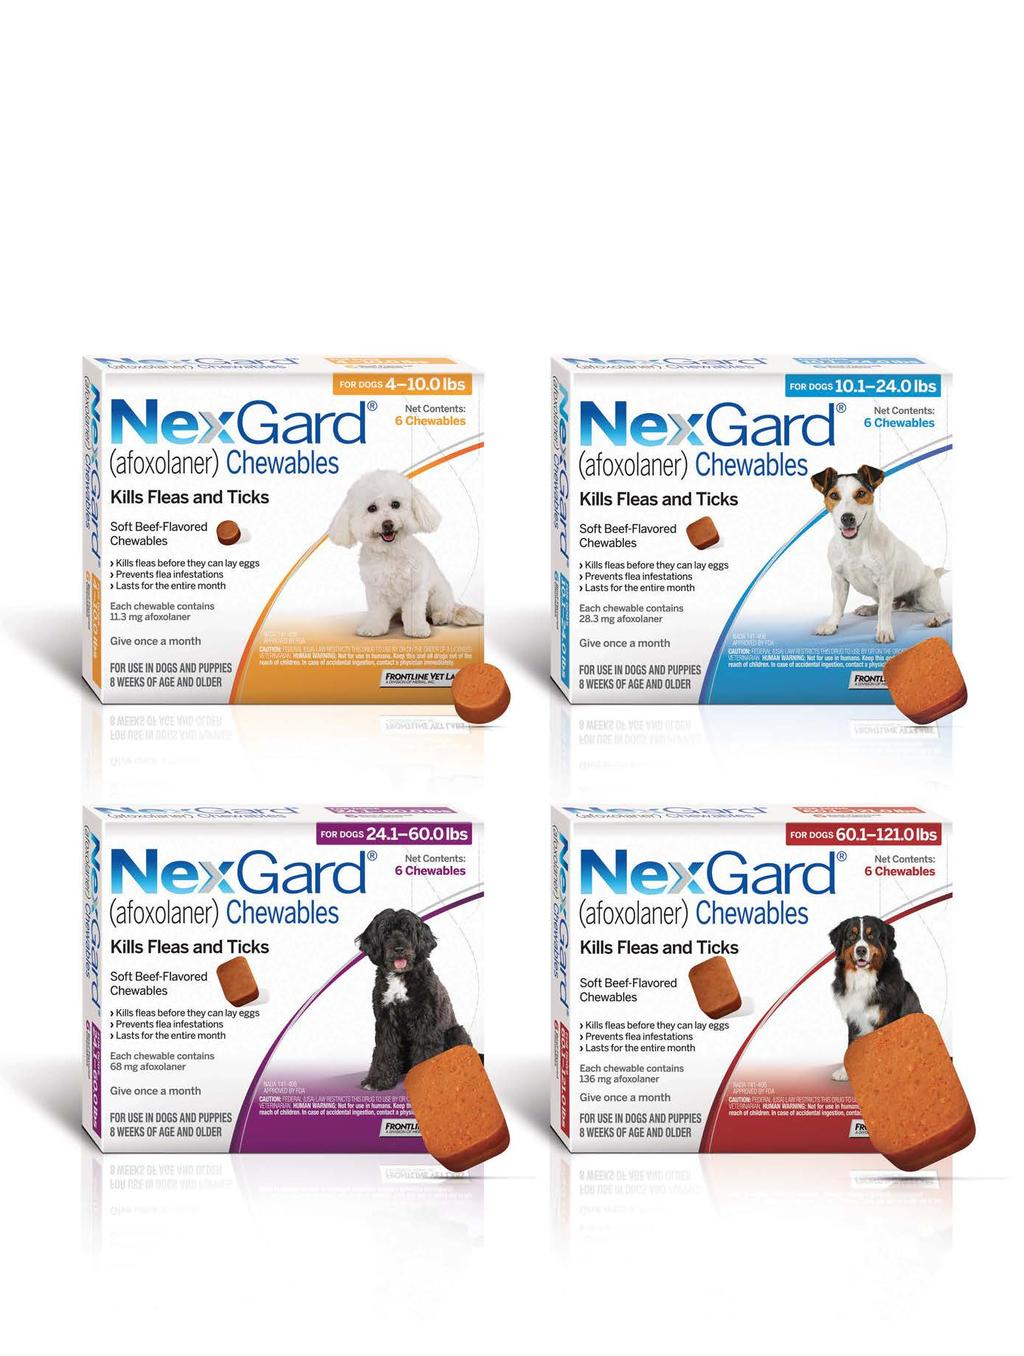 Easy to give, easy to stock. NexGard is available in 4 sizes (both 3 packs and 6 packs): Small Dog: 4-10.0lbs Medium Dog: 10.1-24.